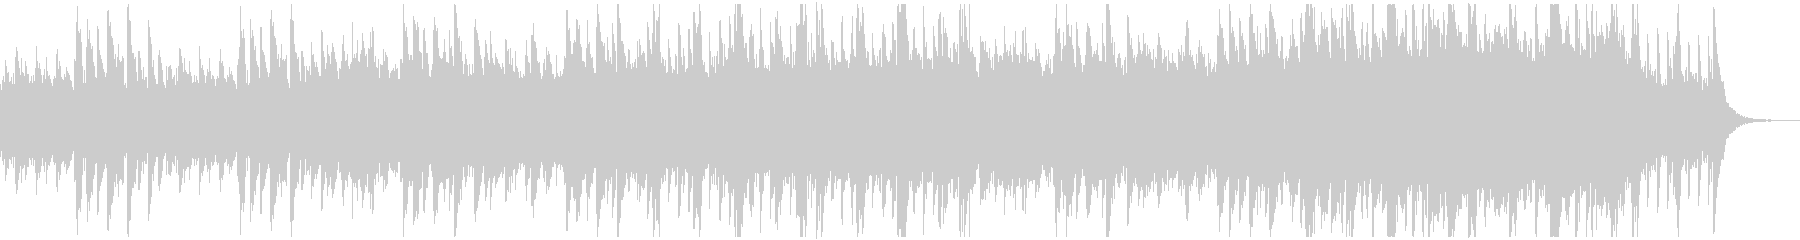 Sad and pitiful magnificent piano strings's unreproduced waveform